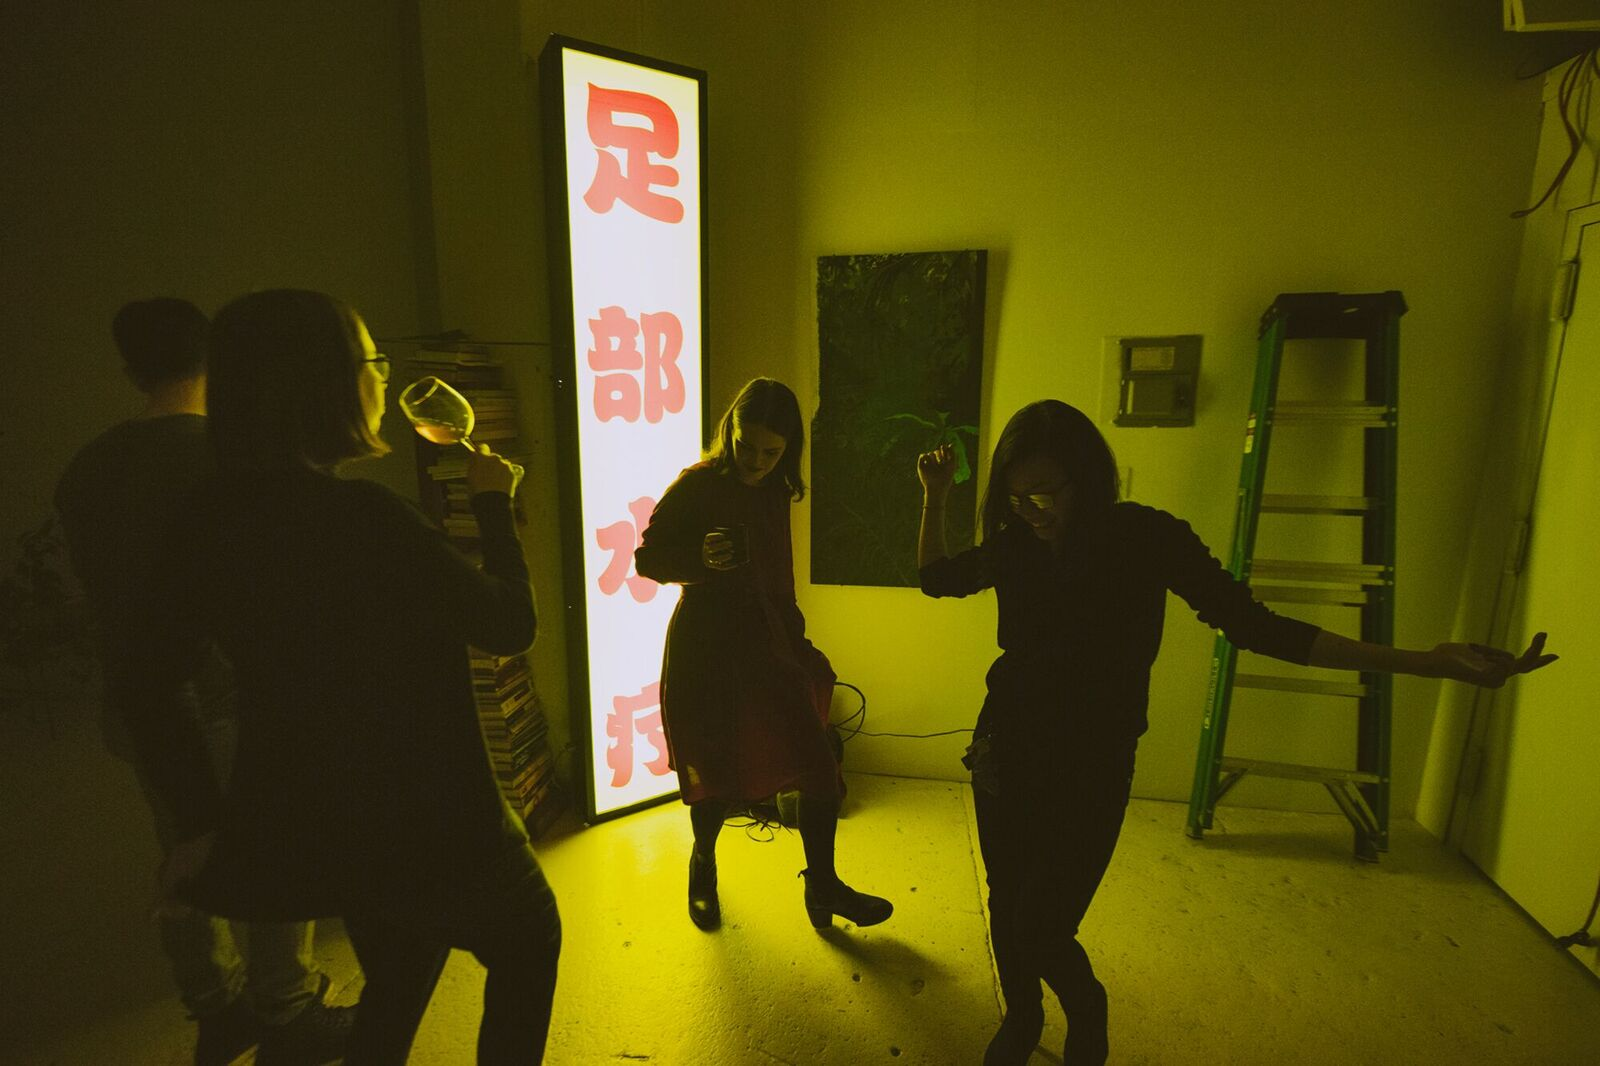 Pham dancing at The Building Show. Photo: Randall Bellows III